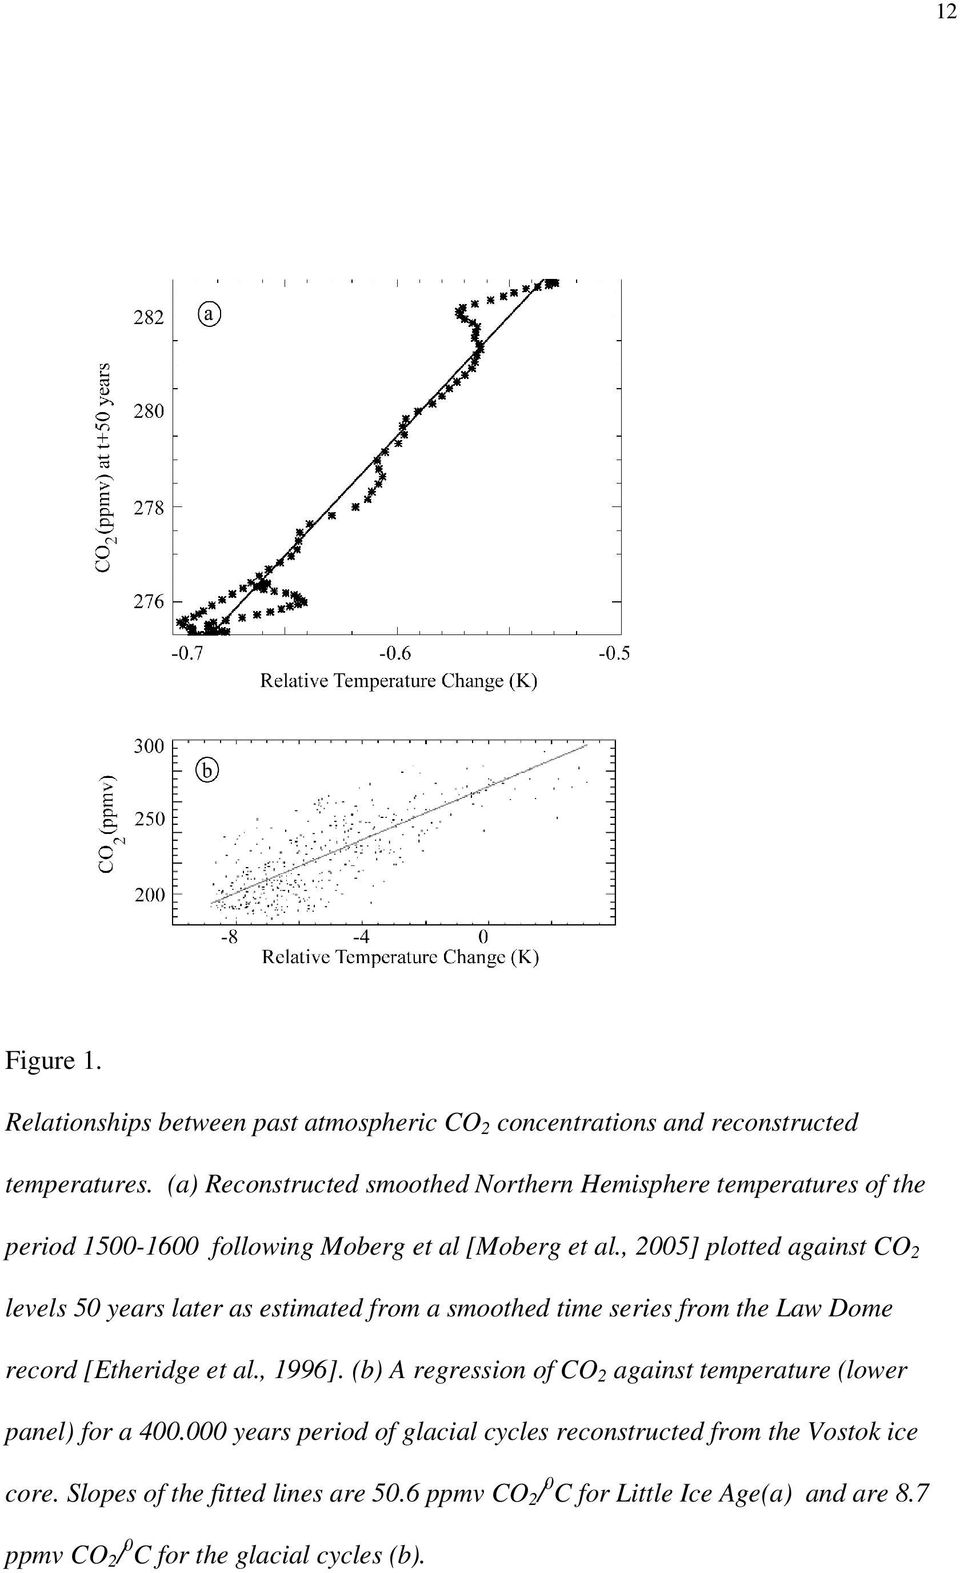 , 2005] plotted against CO 2 levels 50 years later as estimated from a smoothed time series from the Law Dome record [Etheridge et al., 1996].